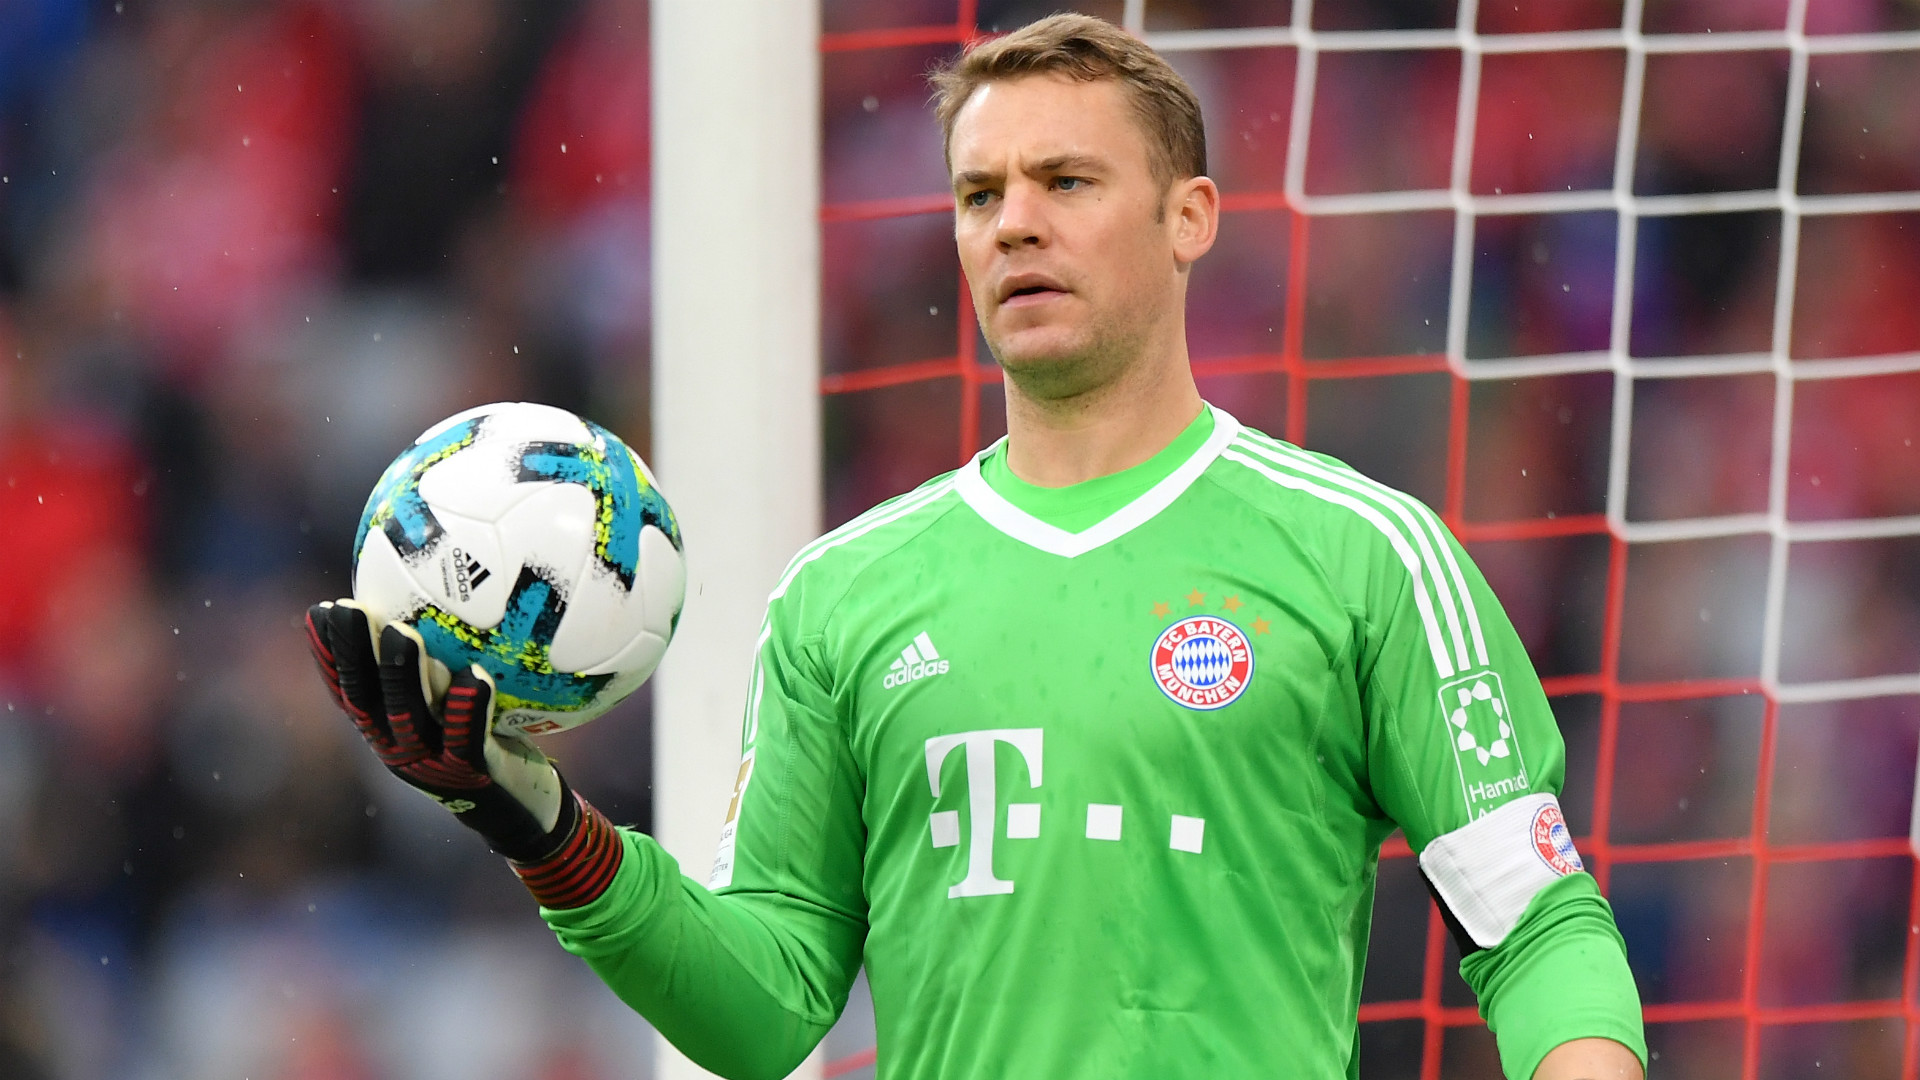 https://images.performgroup.com/di/library/GOAL/75/7/manuel-neuer-bayern-munich-2017_1oz0g16967u5h1jfxpoj74aovu.jpg?t=-1719270234&quality=90&h=300